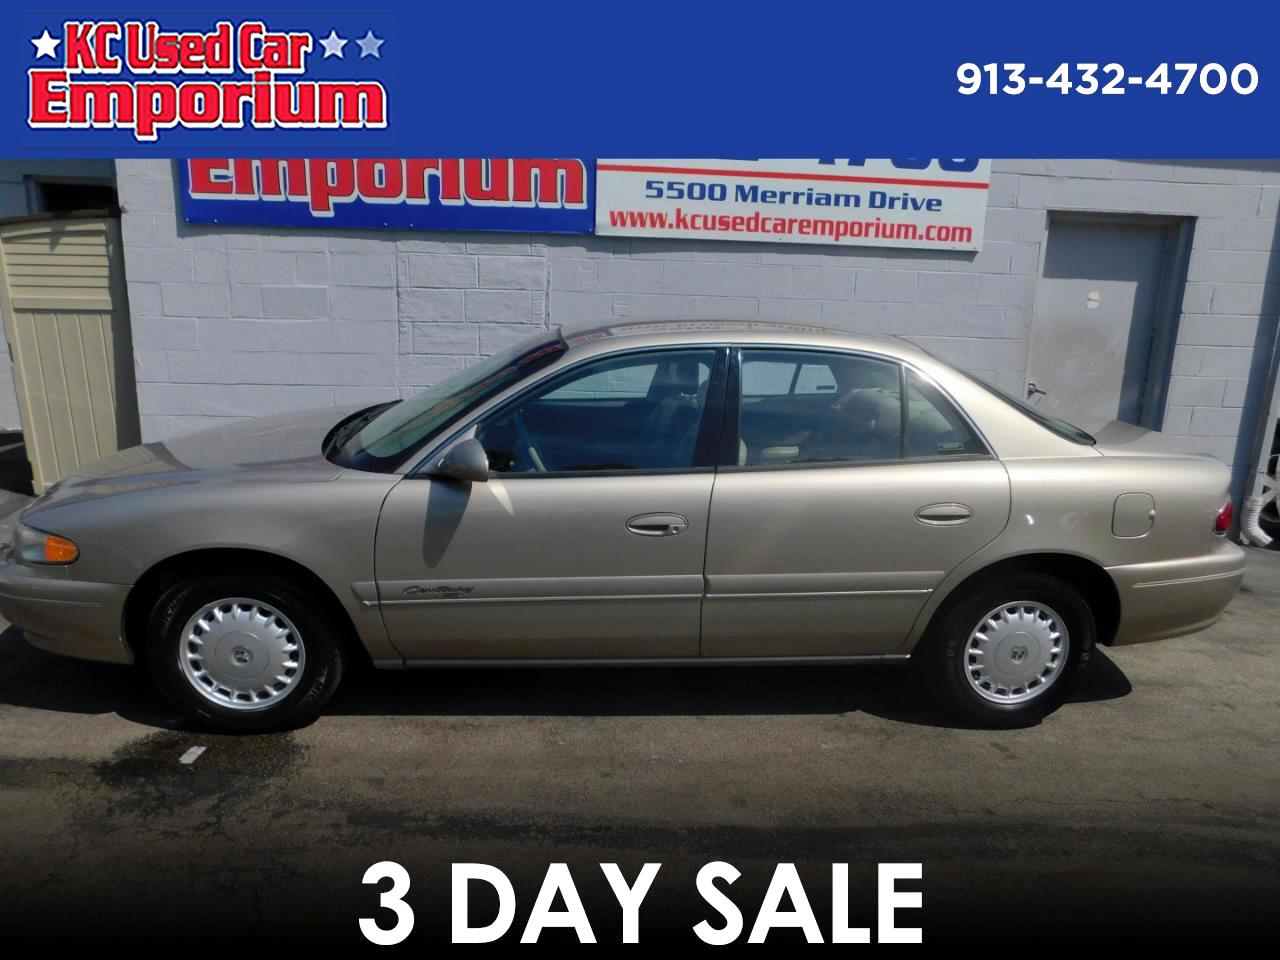 Used Cars For Sale In Kansas City >> Used Cars For Sale Kansas City Ks 66208 Kc Used Car Emporium